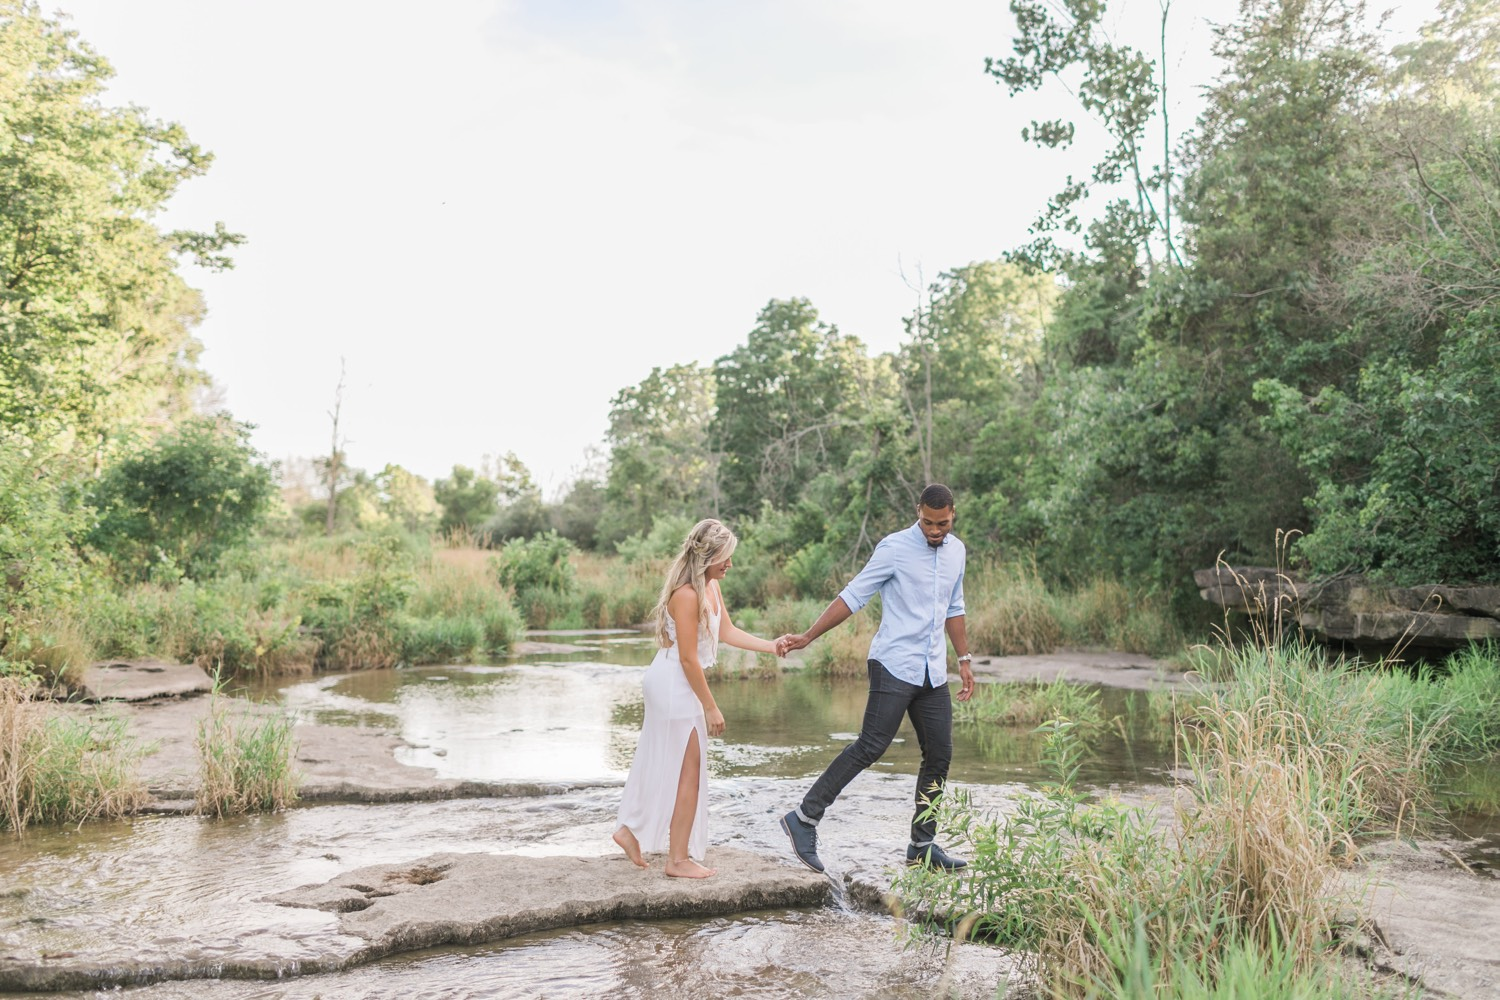 Ashley___Michael_Engagement_Session___Daniel_Ricci_Weddings_80_Balls_falls_engagement_session_1500.jpg